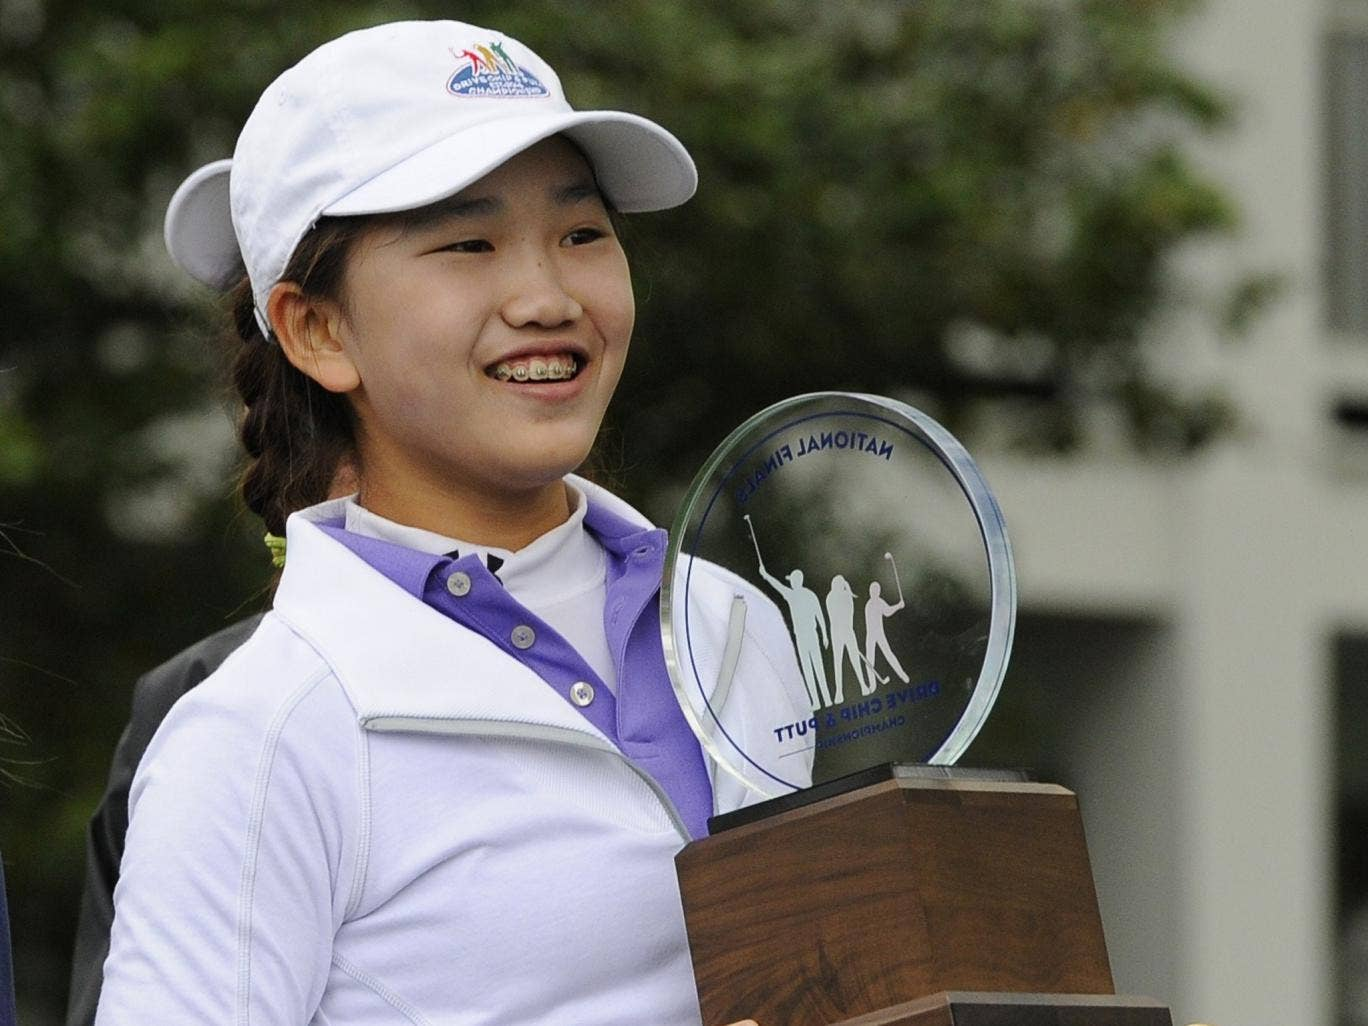 Girls 10-11 category champion Lucy Li from Redwood City, California poses with her trophy during the National Finals of the 2014 Drive, Chip and Putt Championships April 6, 2014 at Augusta National